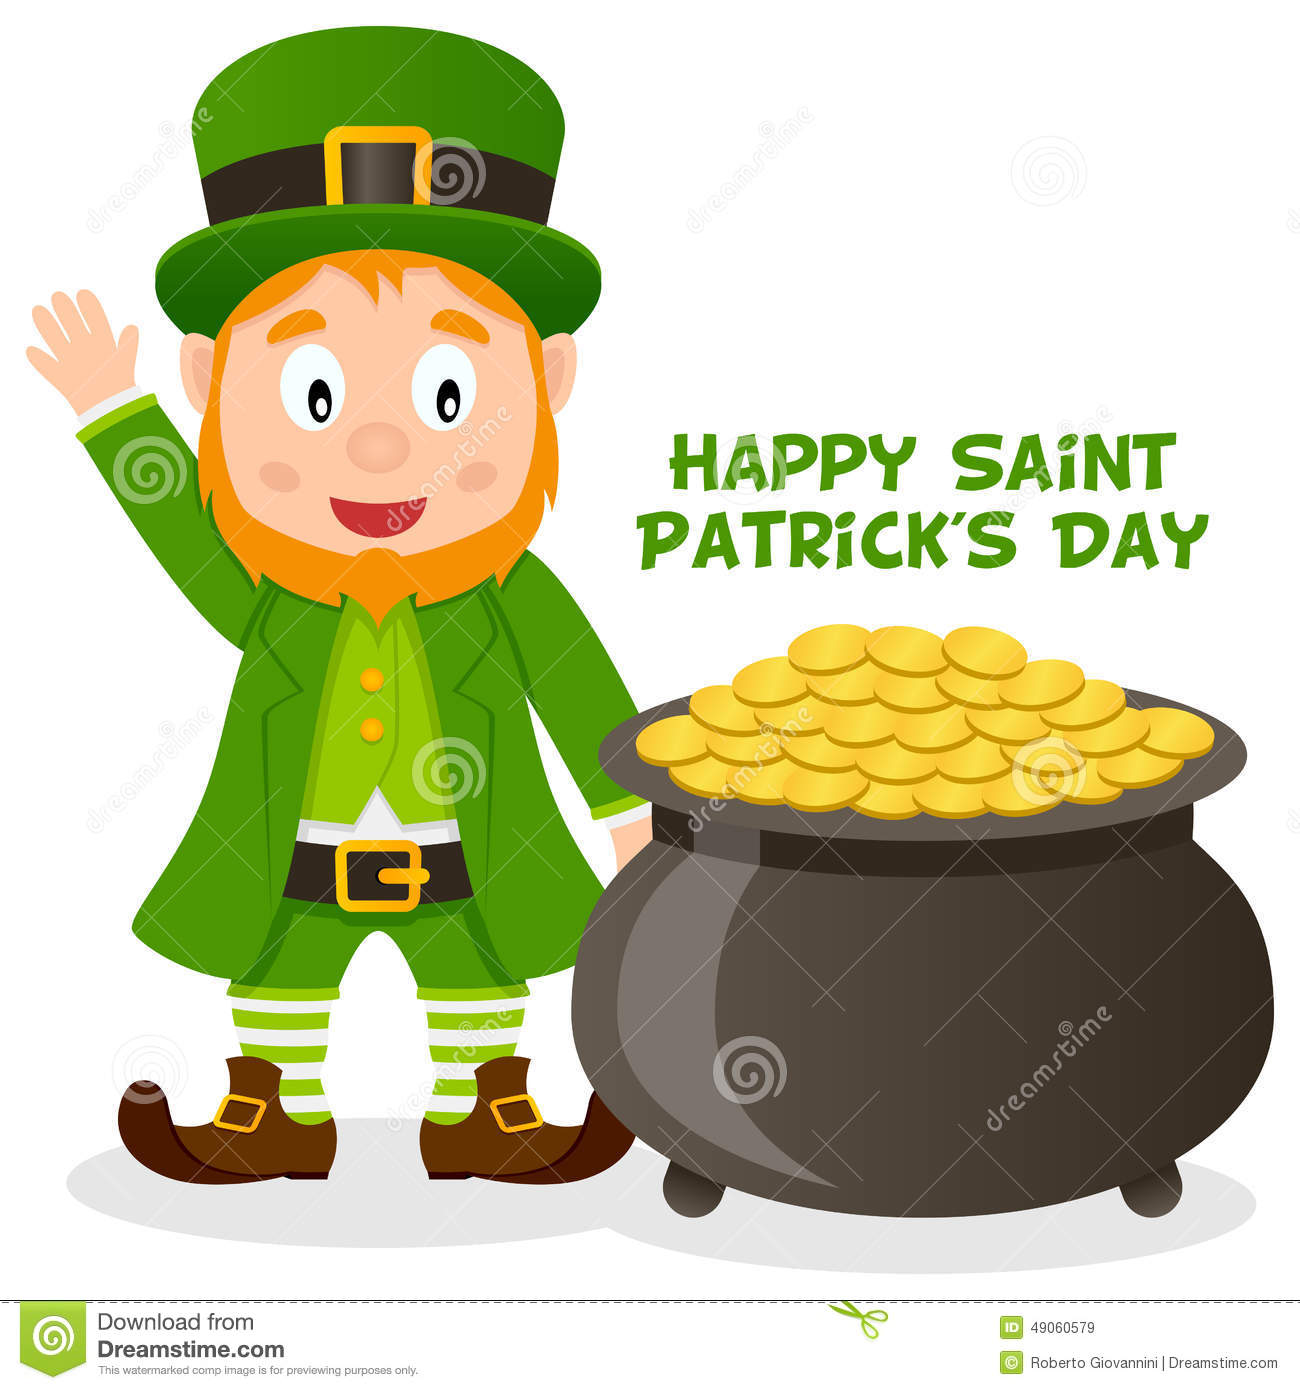 Patrick S Day Pot Of Gold And Leprechaun Stock Vector Image 49060579